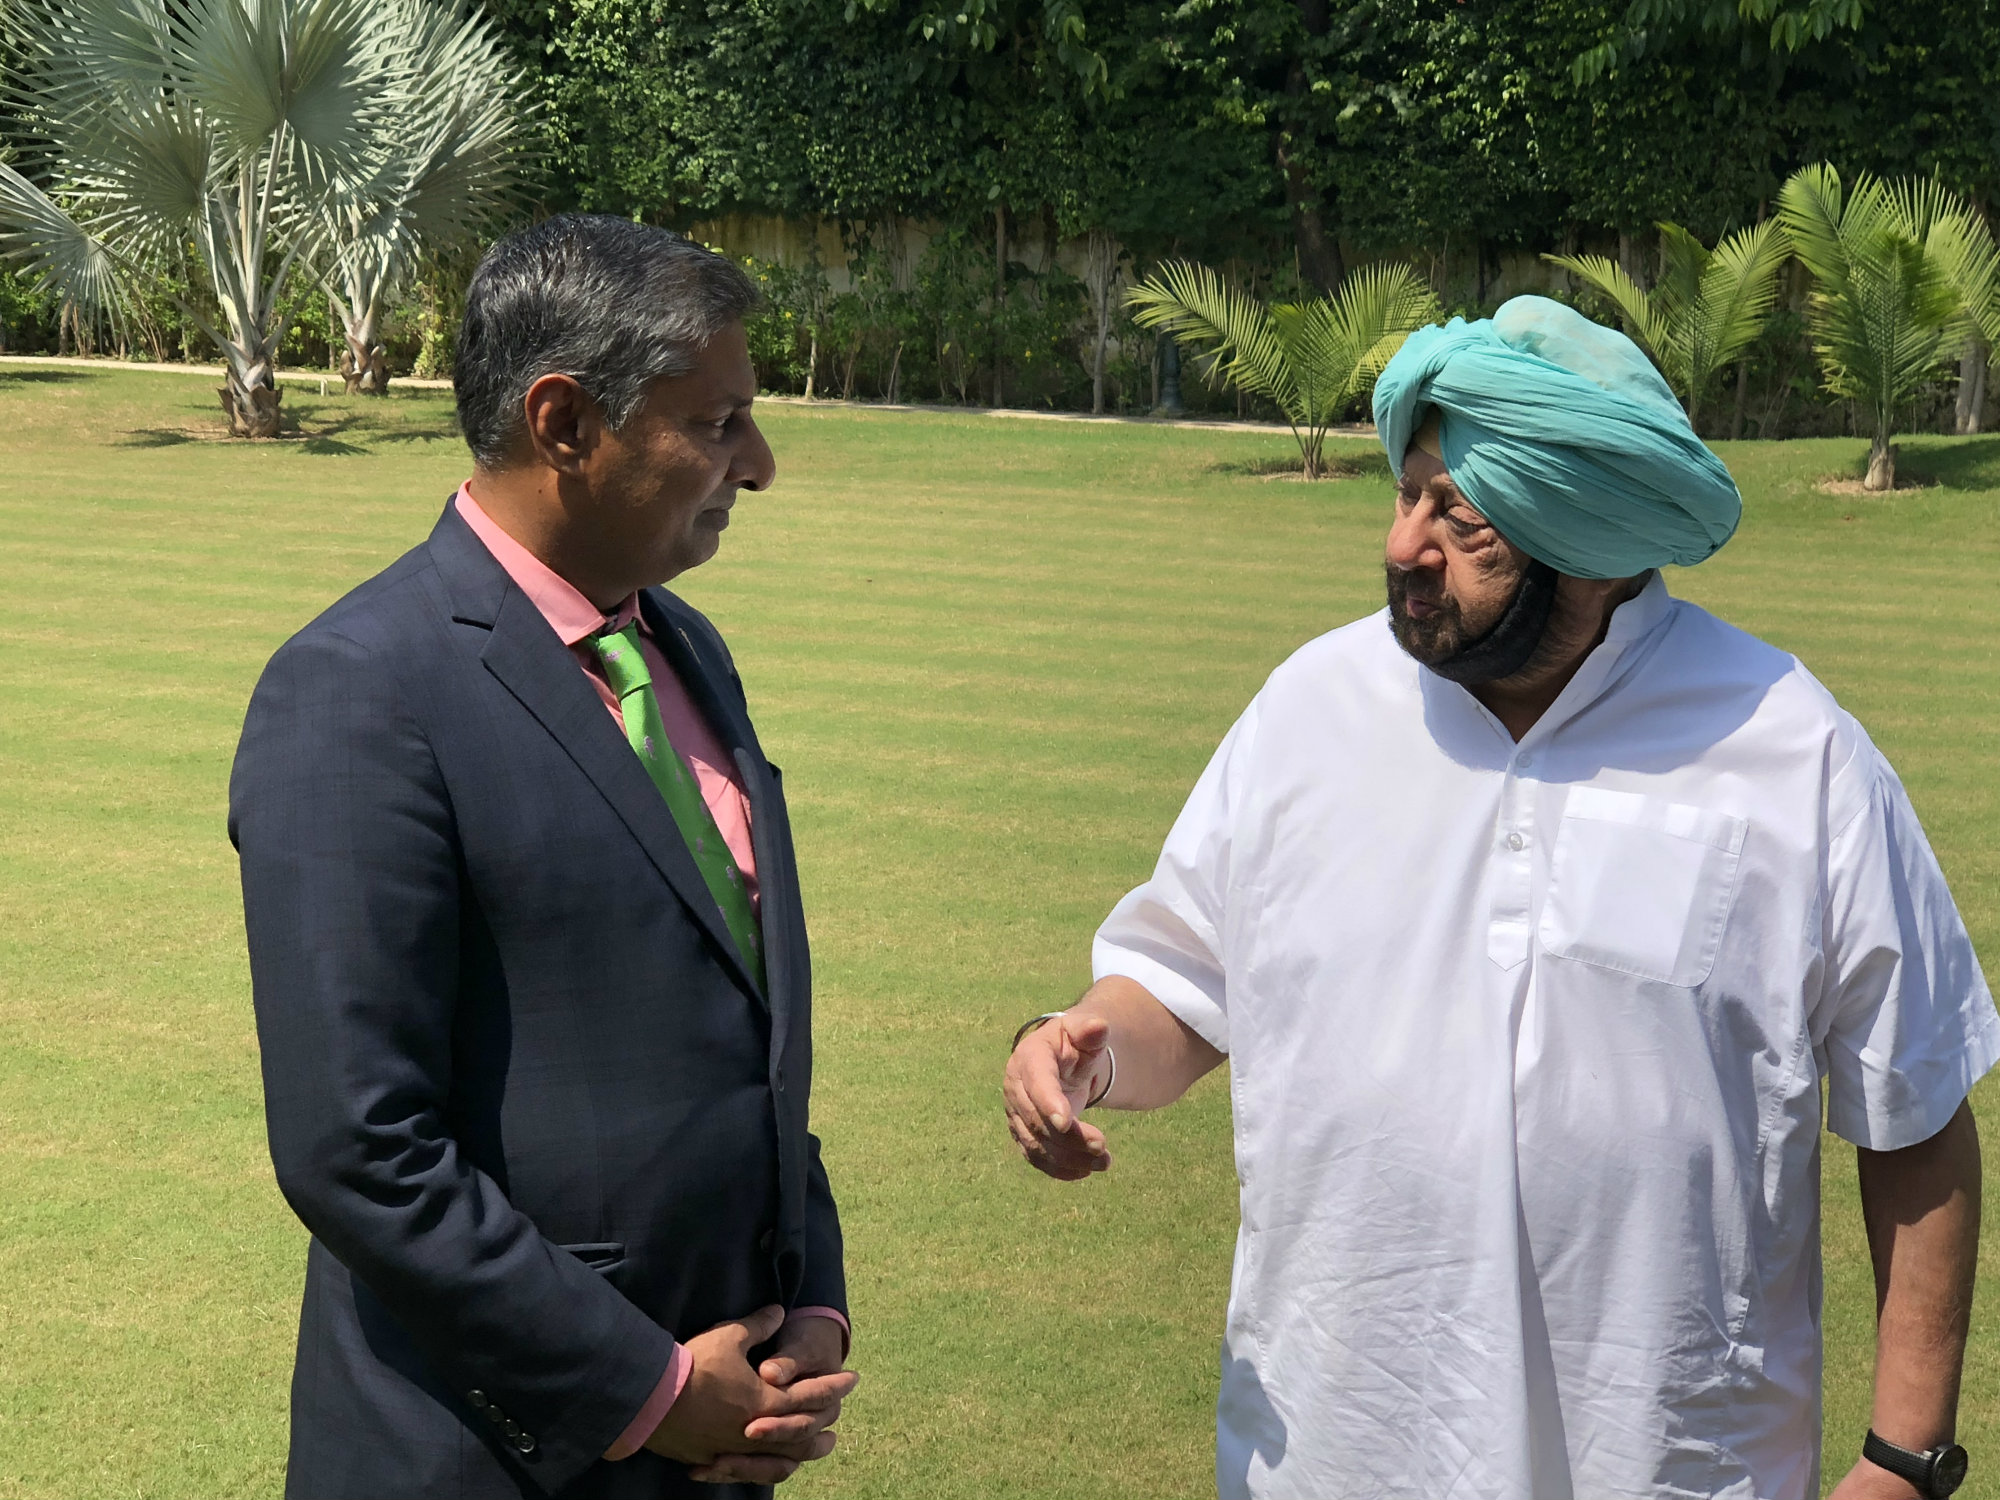 https://d3n8a8pro7vhmx.cloudfront.net/prasadpanda/pages/13/features/original/Myself_and_Chief_Minister_of_Punjab__Amarinder_Singh.JPG?1545340374